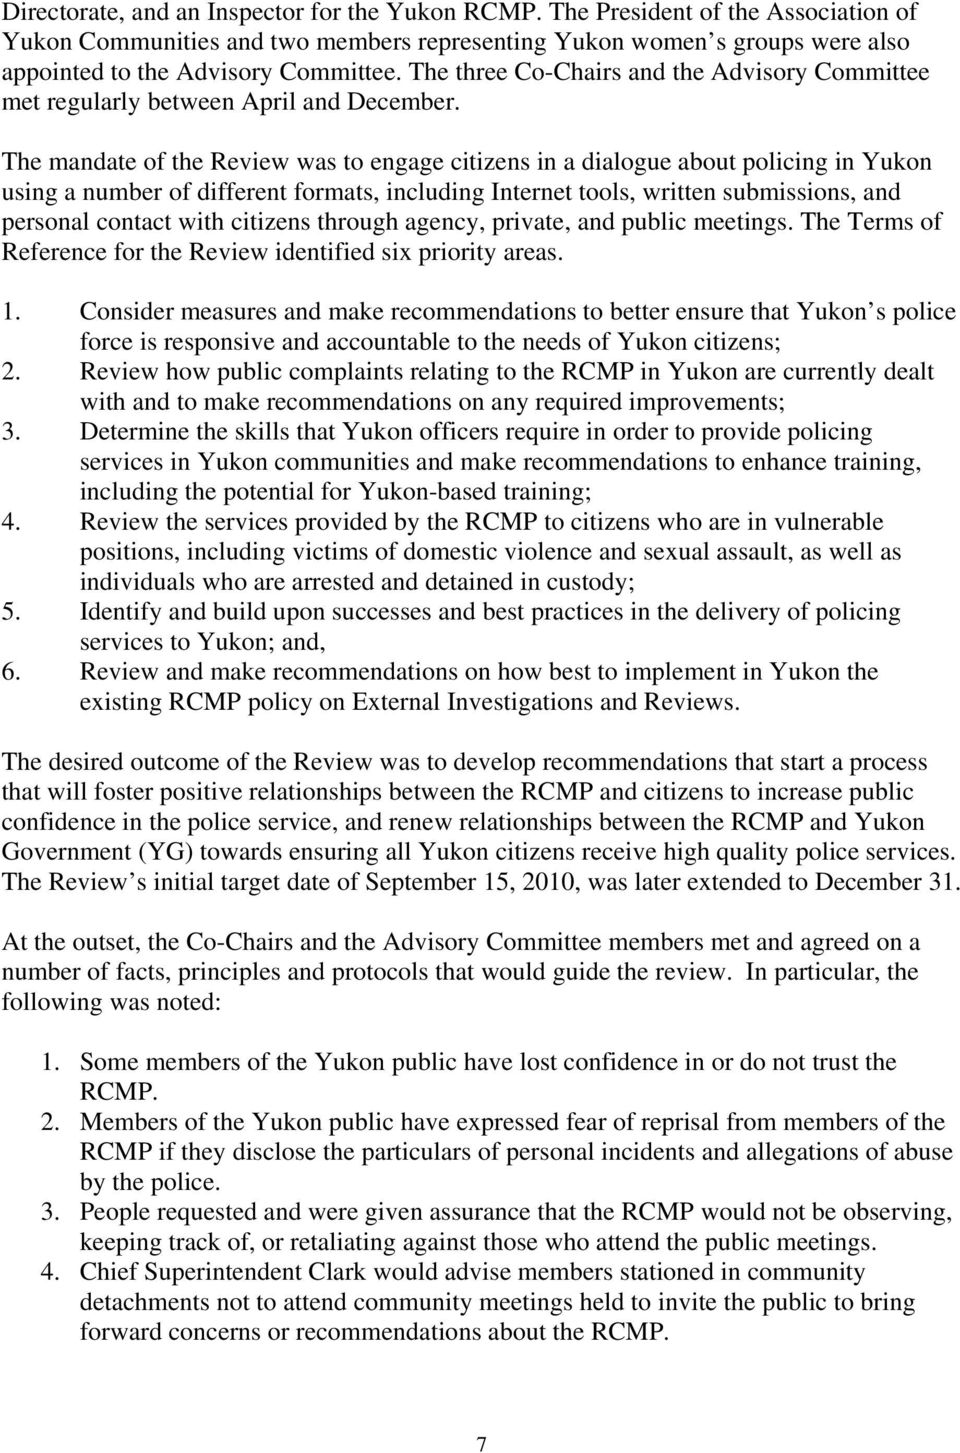 The mandate of the Review was to engage citizens in a dialogue about policing in Yukon using a number of different formats, including Internet tools, written submissions, and personal contact with